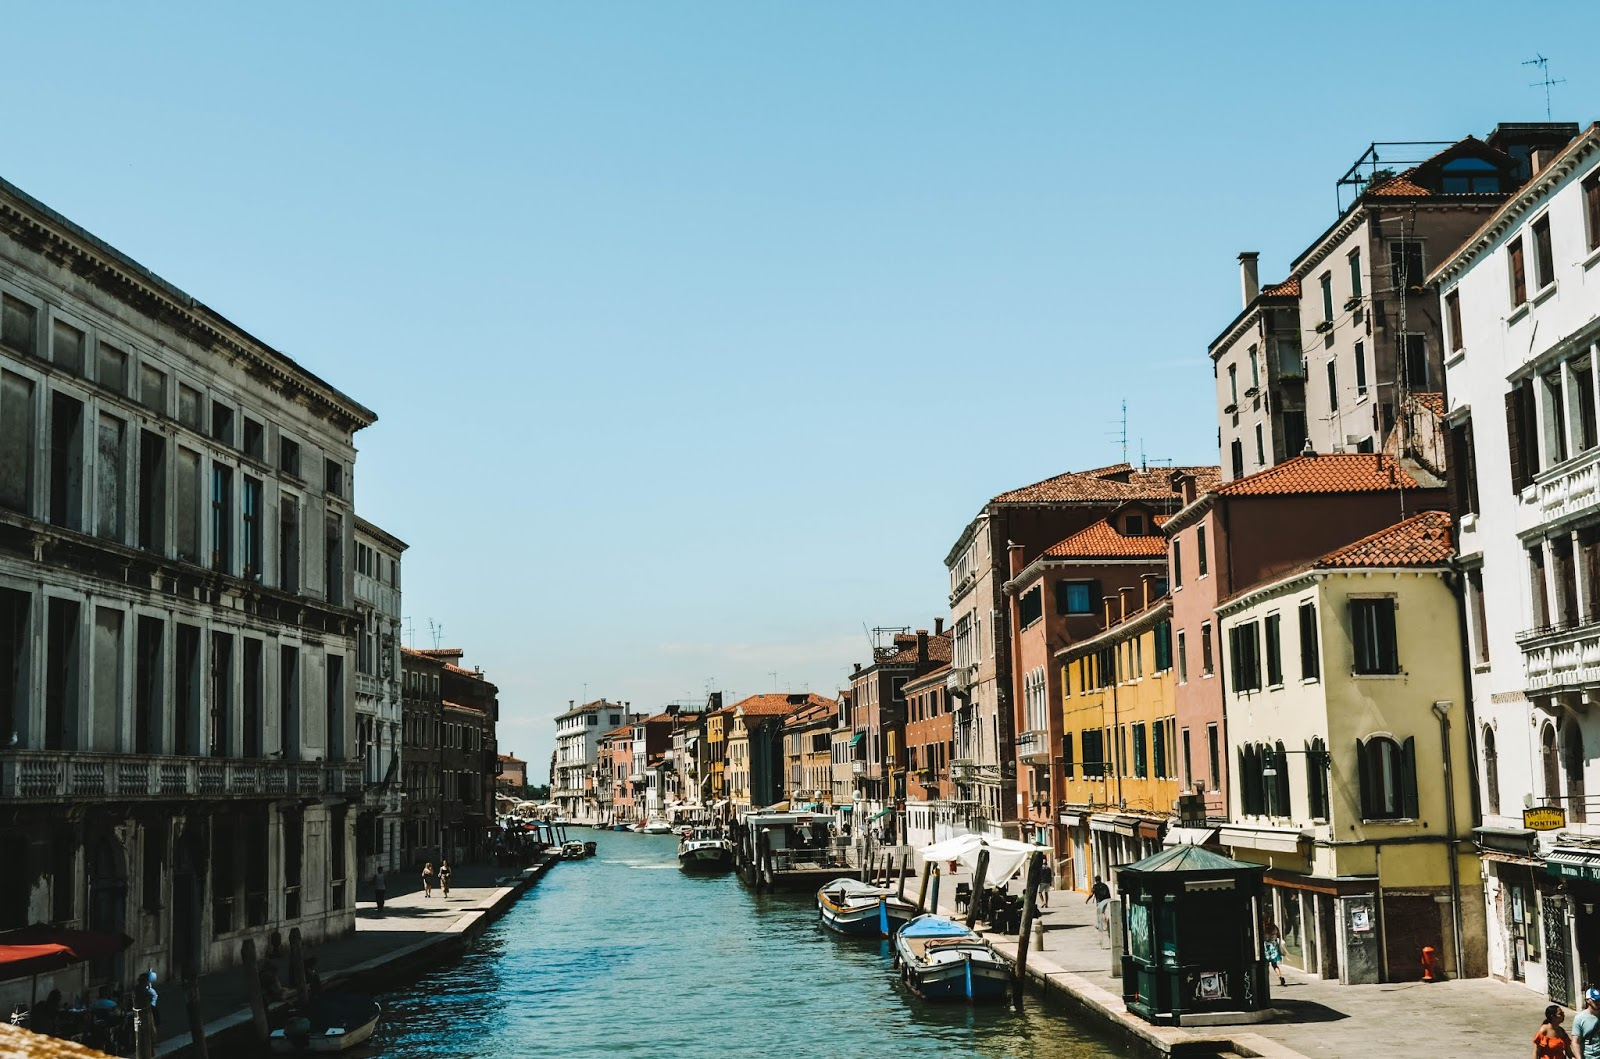 summer-2019-in-venice-italy-at-rialto-bridge-grand-canal-gondola-ride-must-do-list